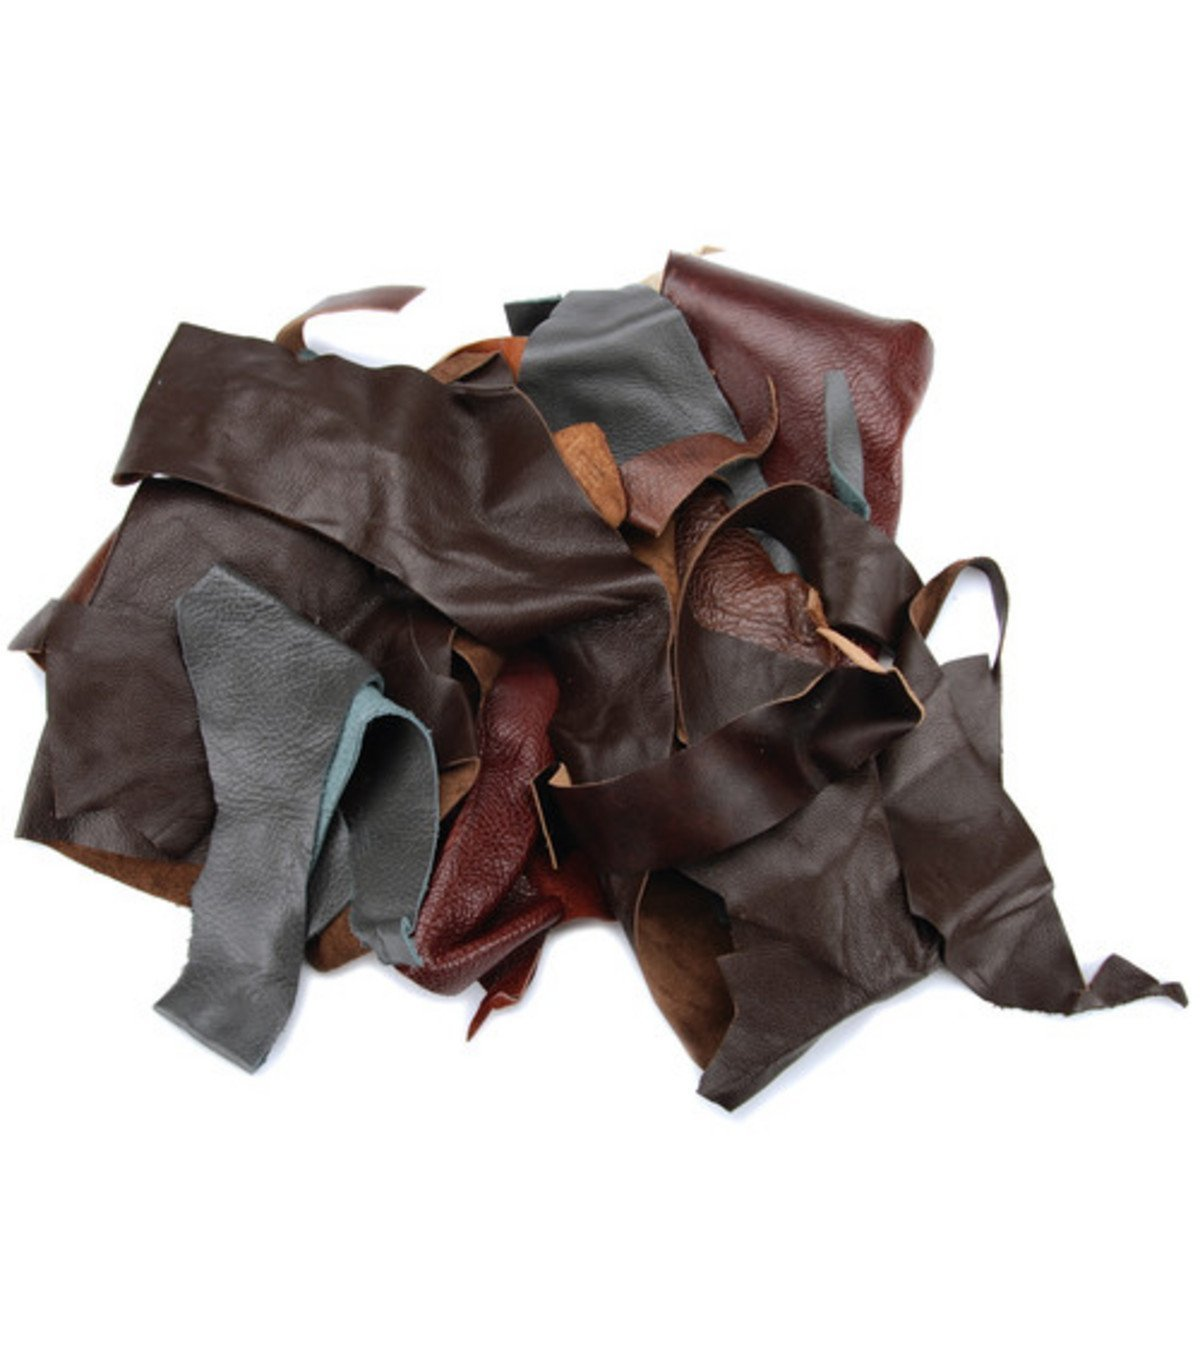 REED Scraps - 2 Pound Leather from Garment Cutting Mostly Black Color, 2 lb. REED LEATHER